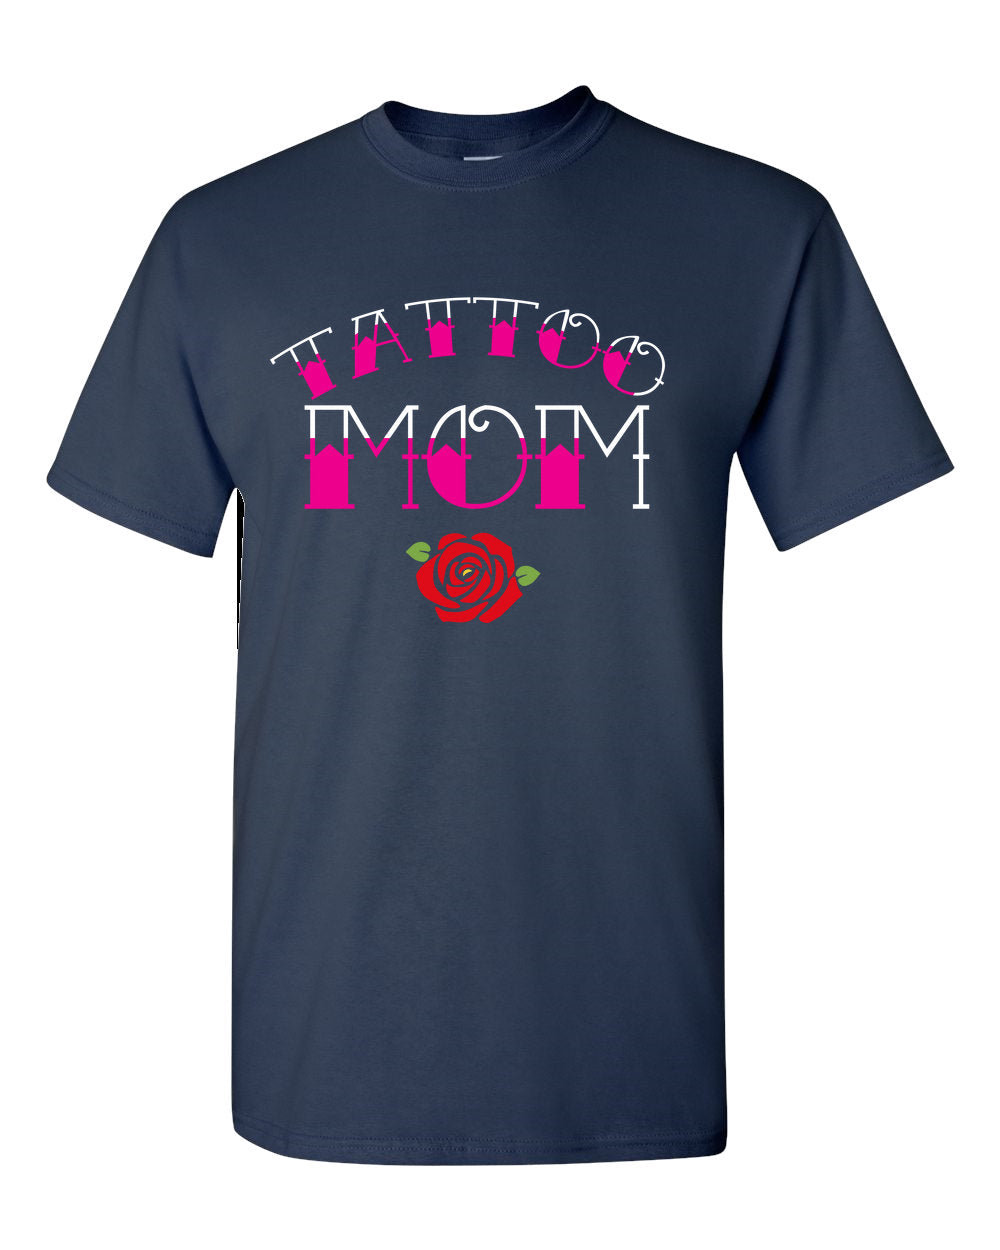 Tattoo Mom Short-Sleeve Women T-Shirt - Great Gift For Mom -Inked Mom